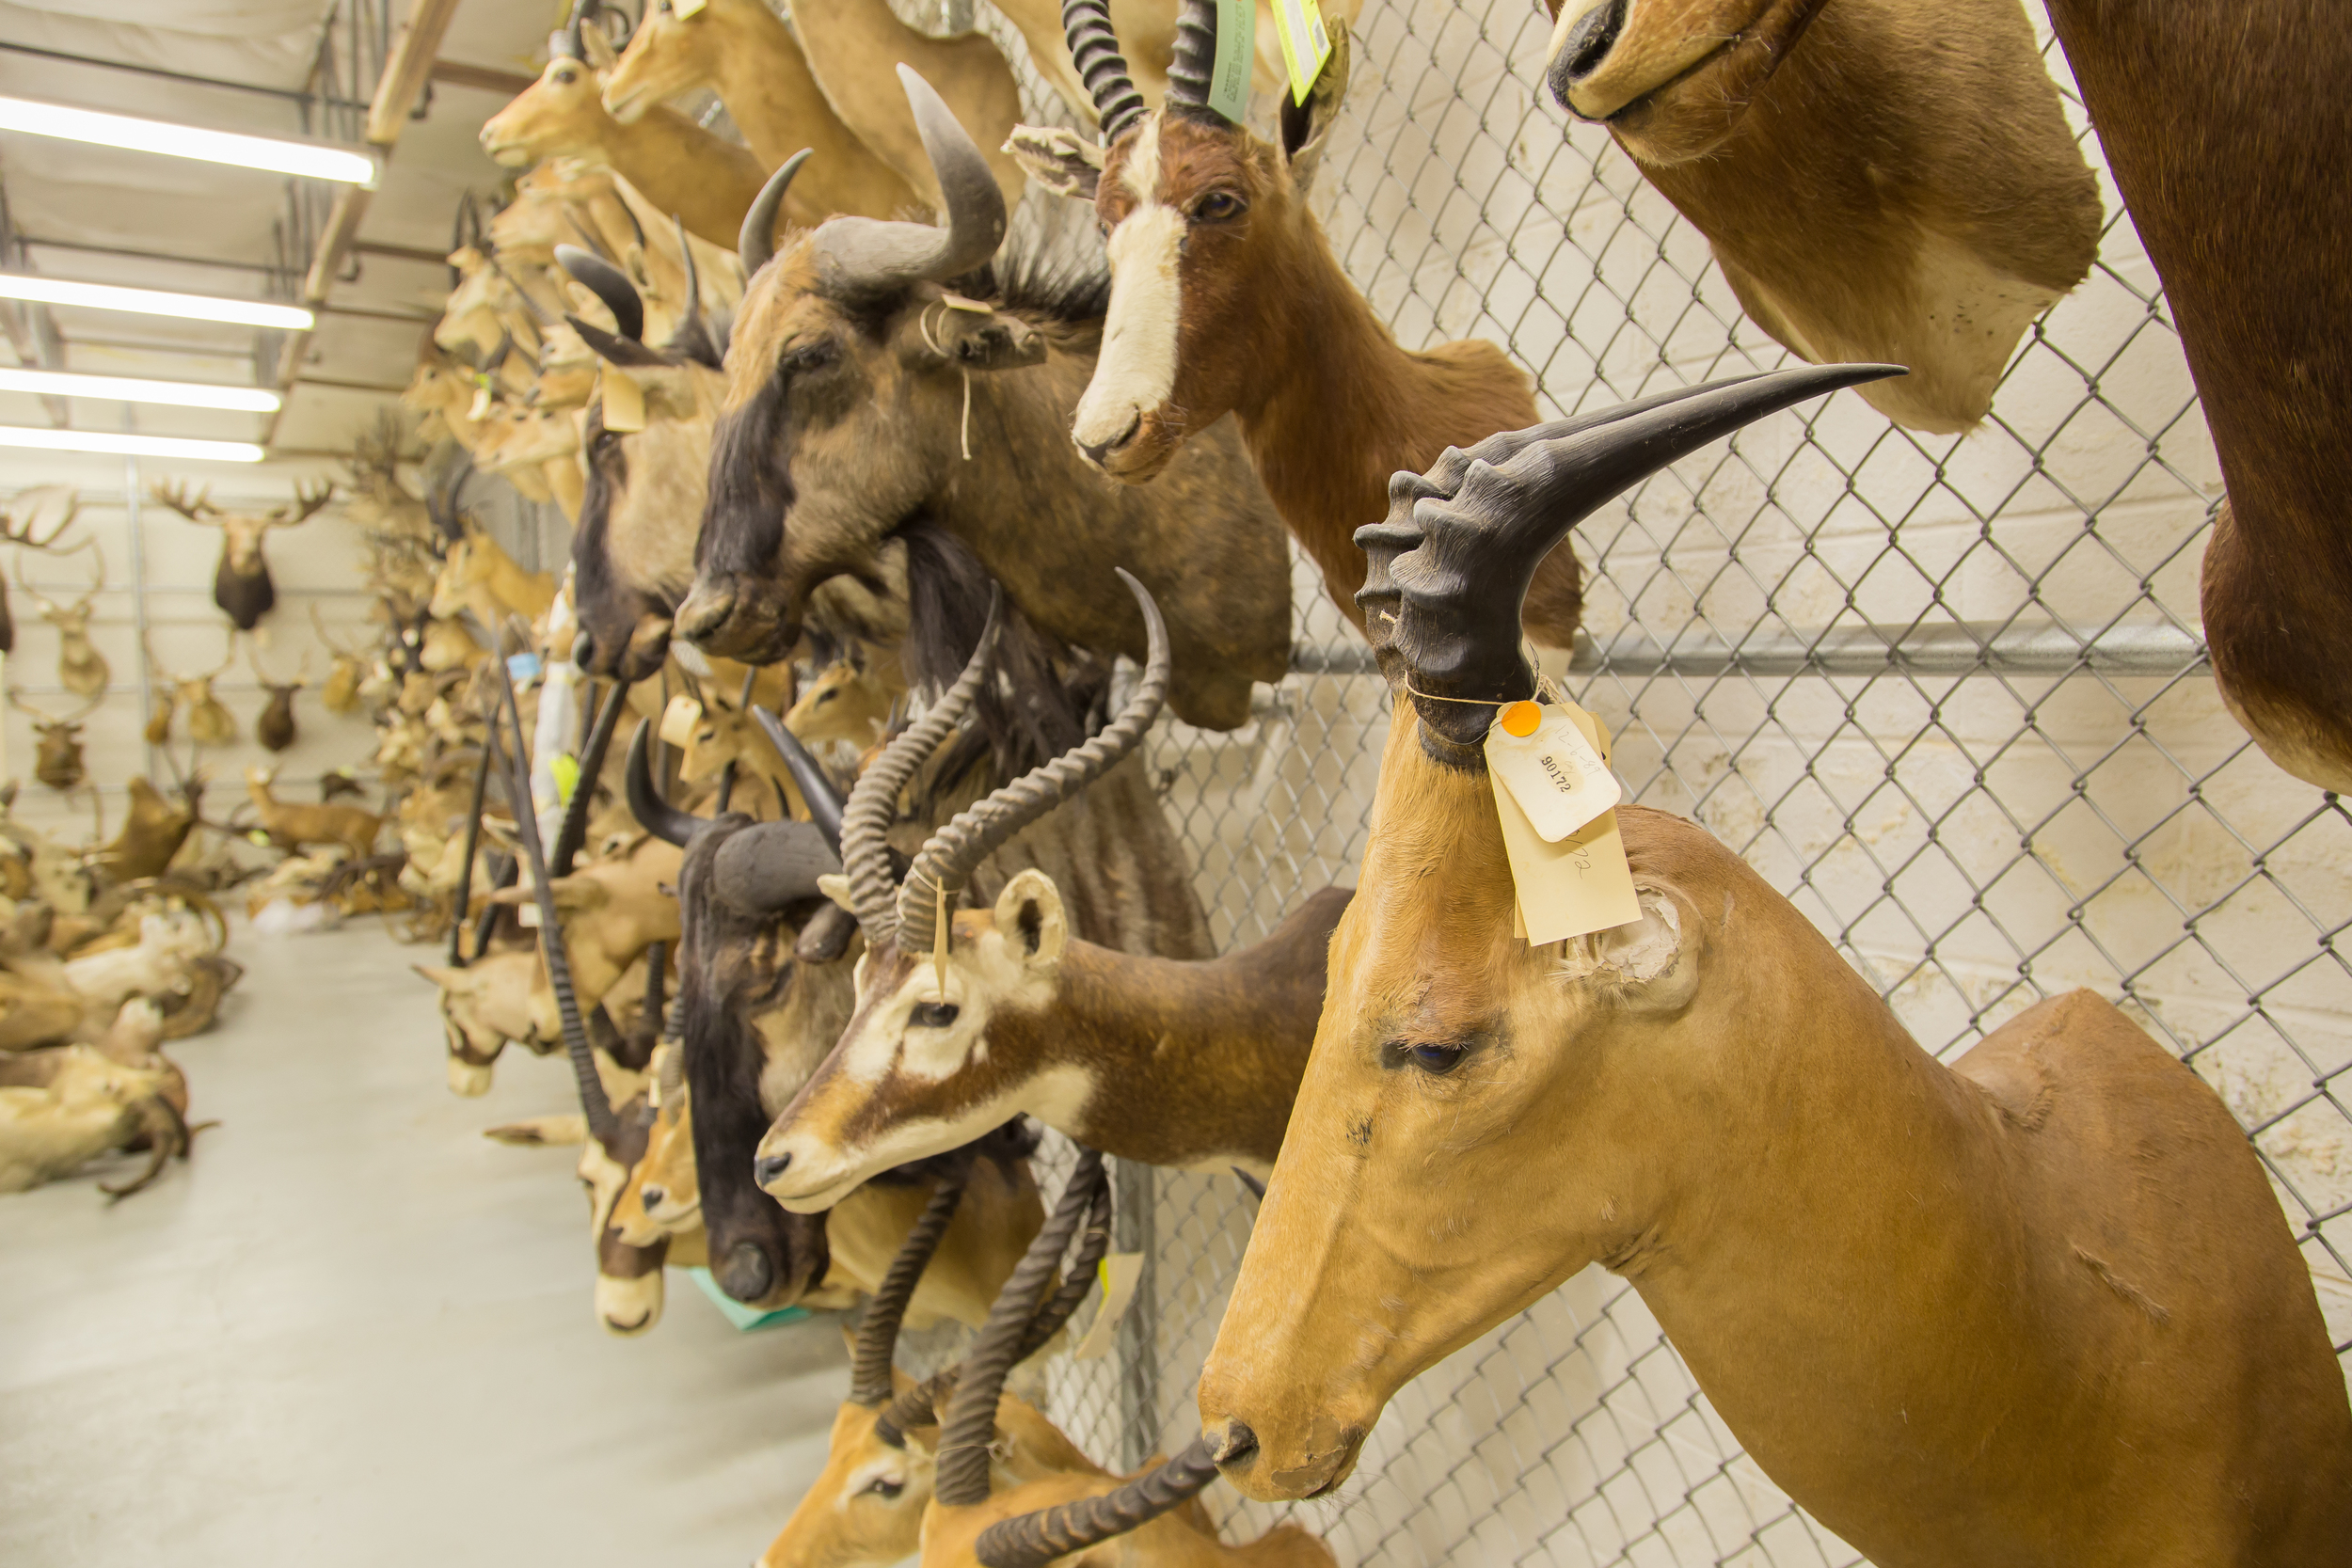 These taxidermy mounts are being investigated by the US Fish & Wildlife Forensic Laboratory.